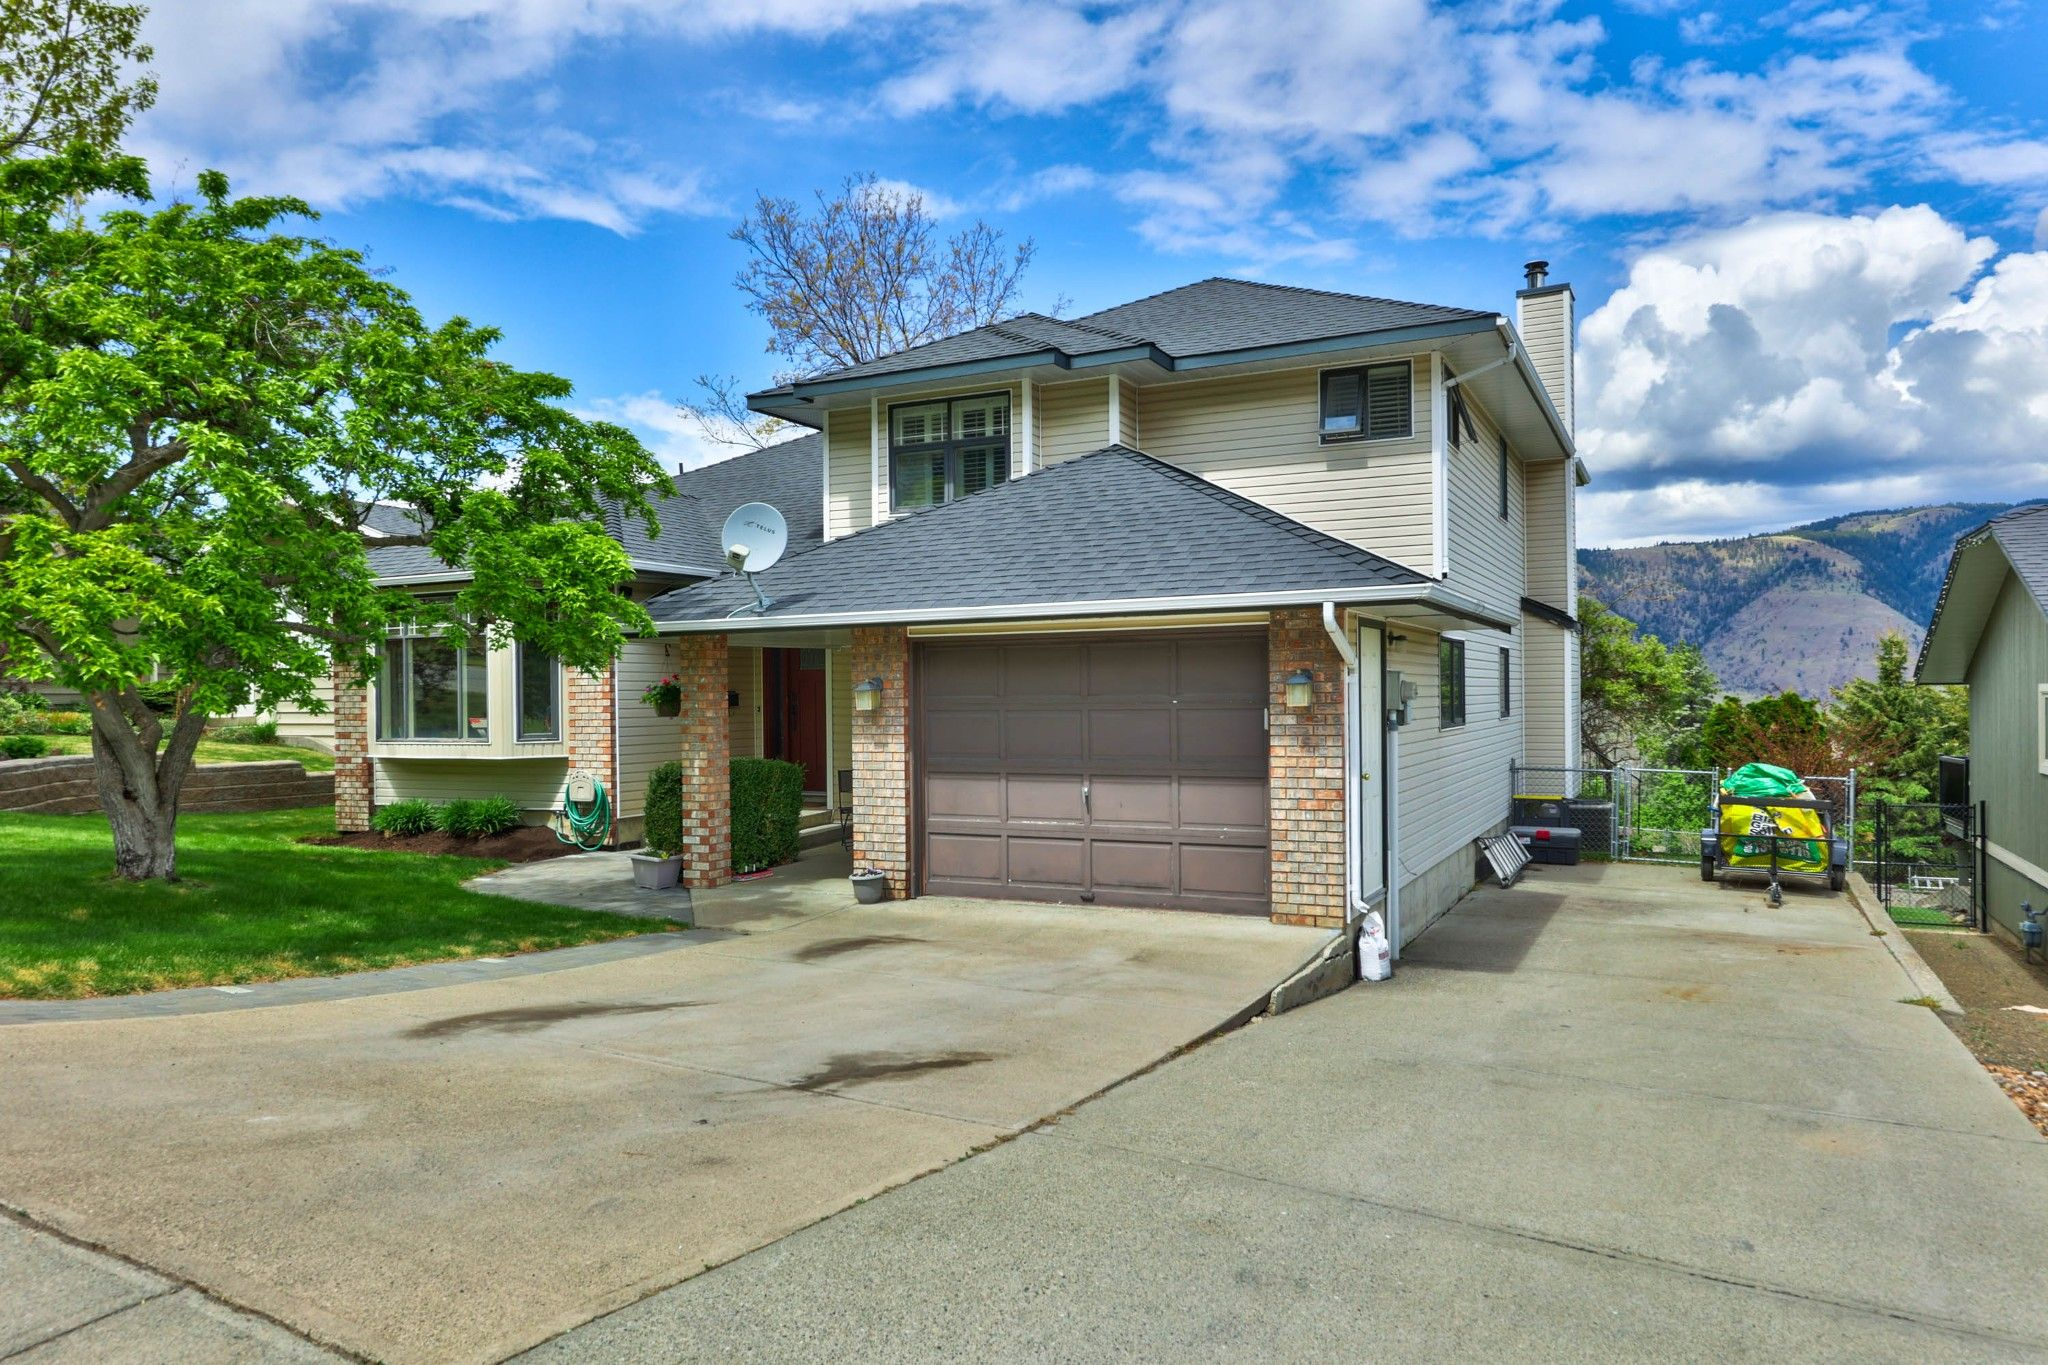 Photo 3: Photos: 2816 Capilano Drive in Kamloops: Juniper Heights House for sale : MLS®# 162002